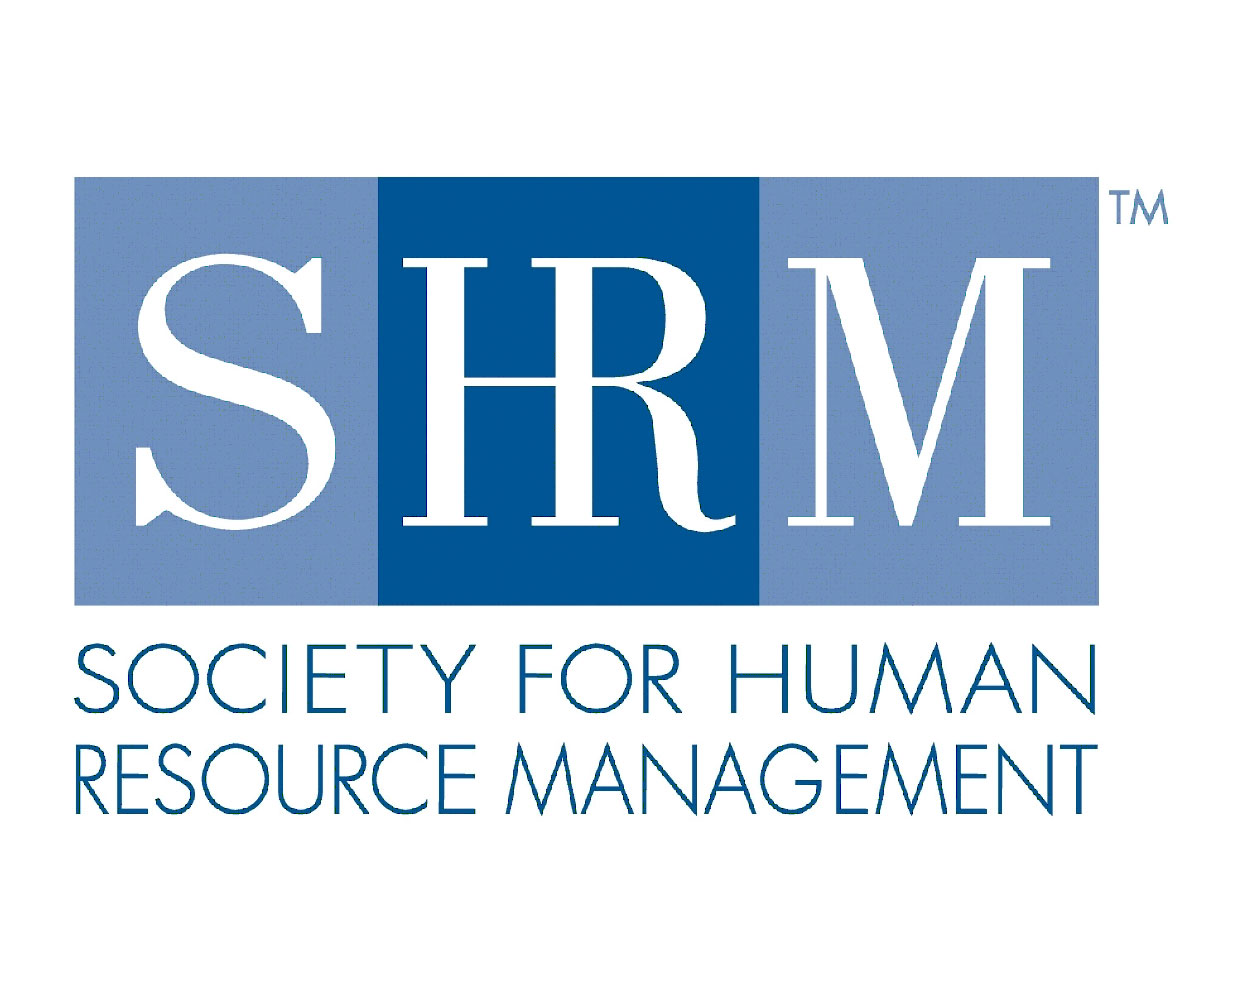 Society of Human Resource Management (SHRM)